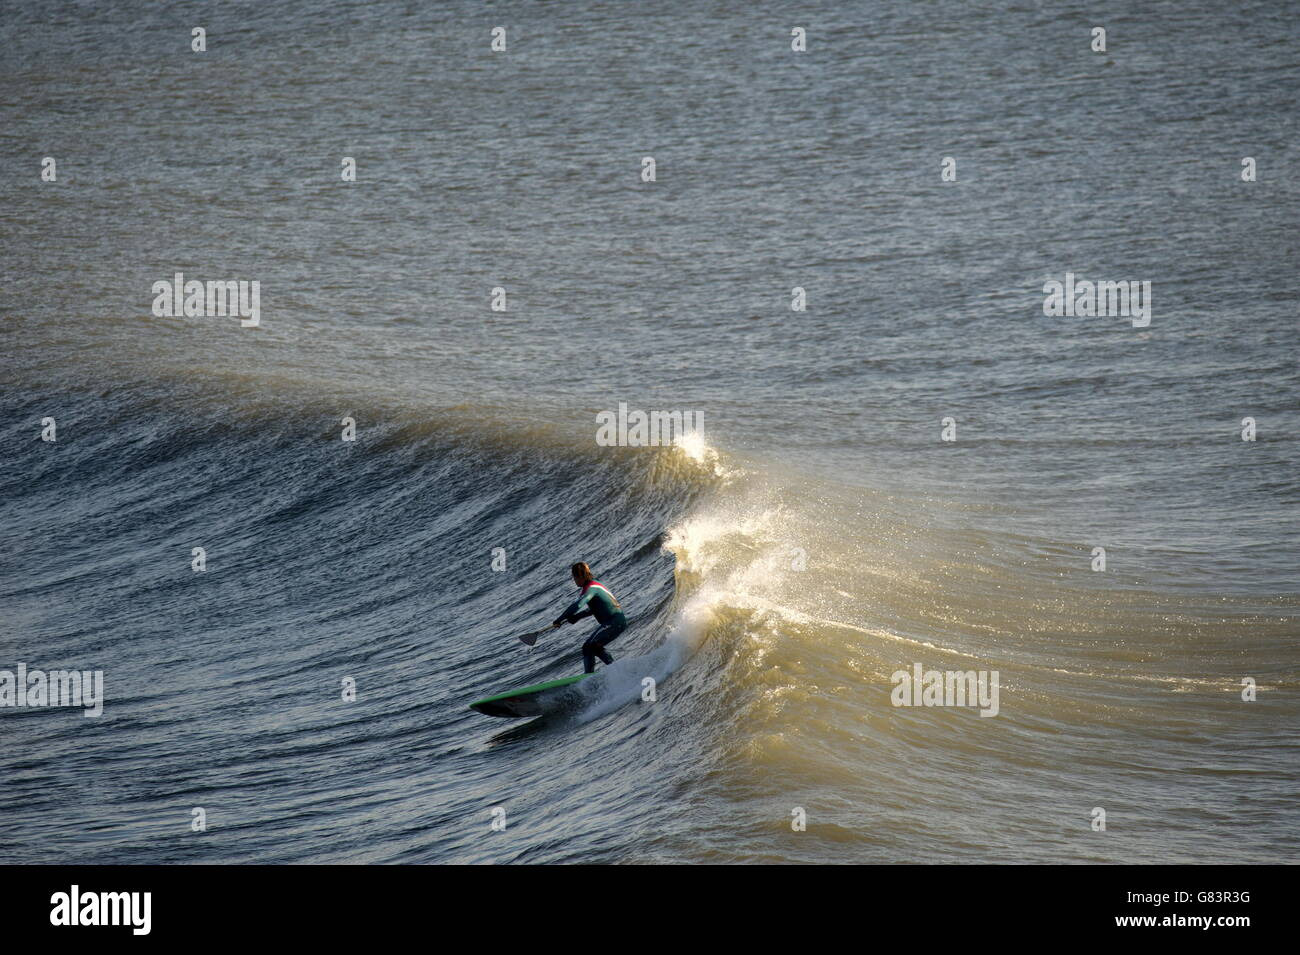 Take off on a perfect wave .Surfers eye view of swell above  a Gower point break in Wales, UK - Stock Image